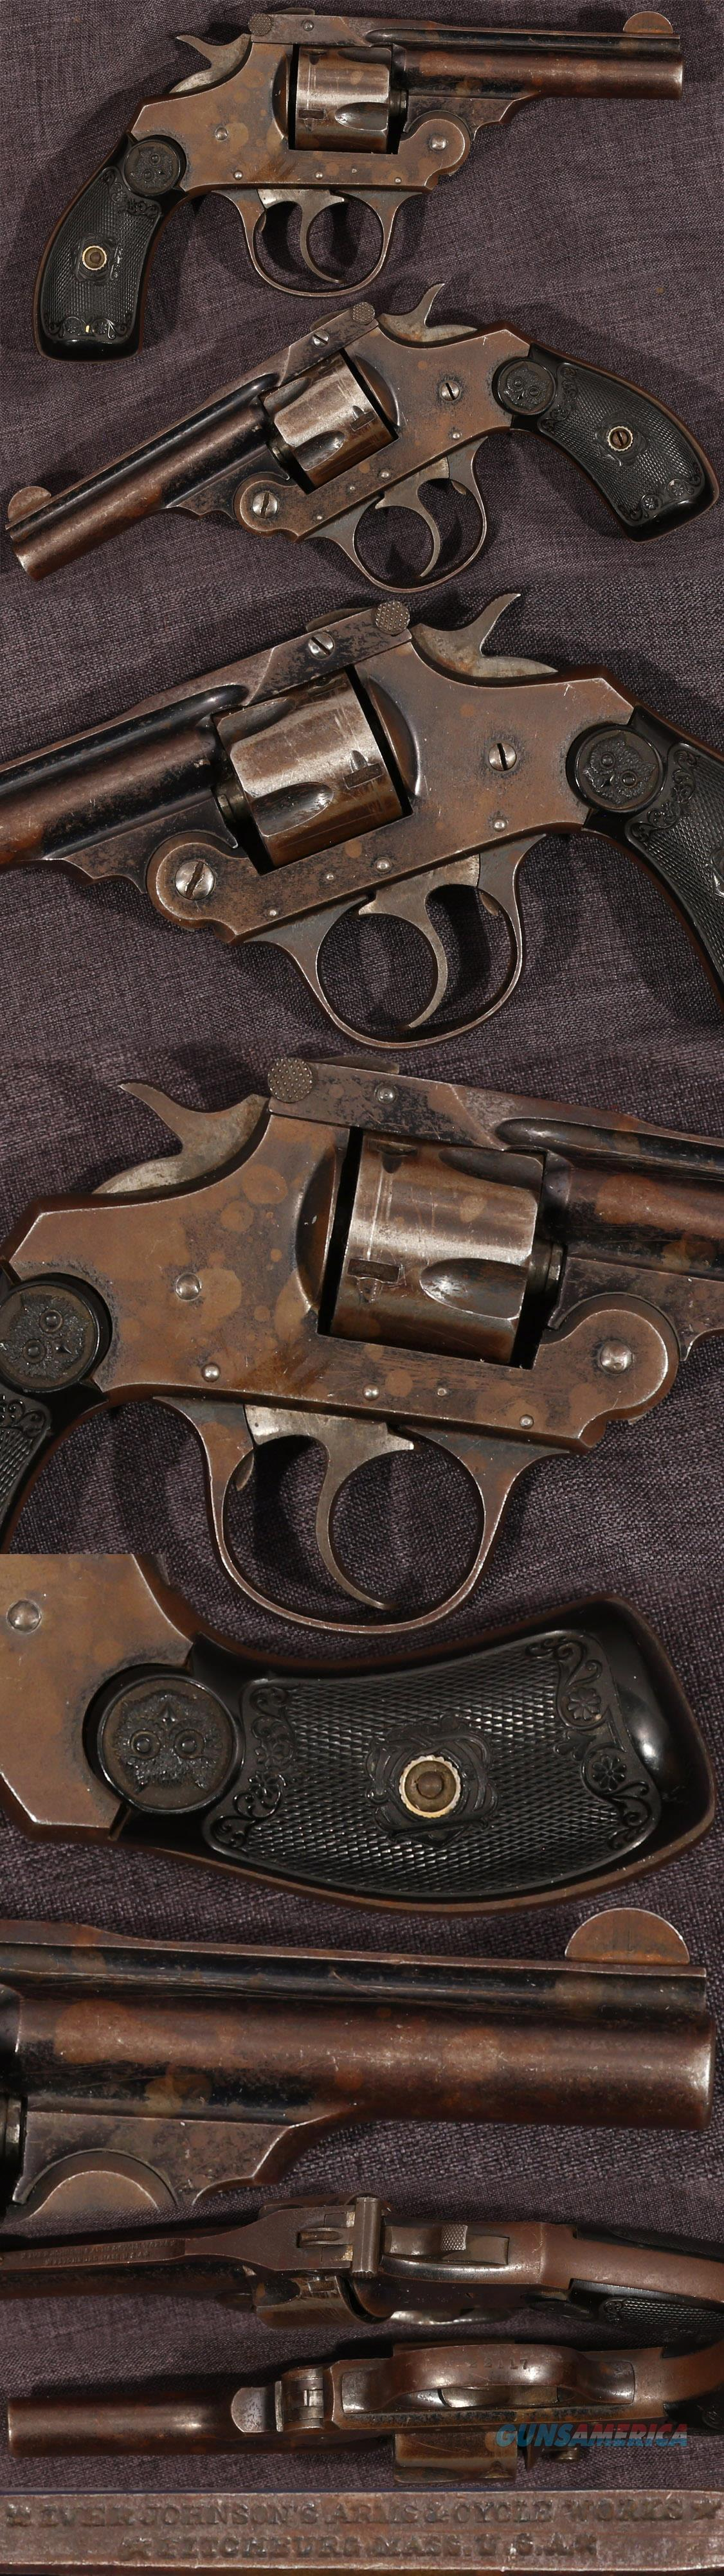 antique Iver Johnson 32 caliber double action revolver  Guns > Pistols > Iver Johnson Pistols